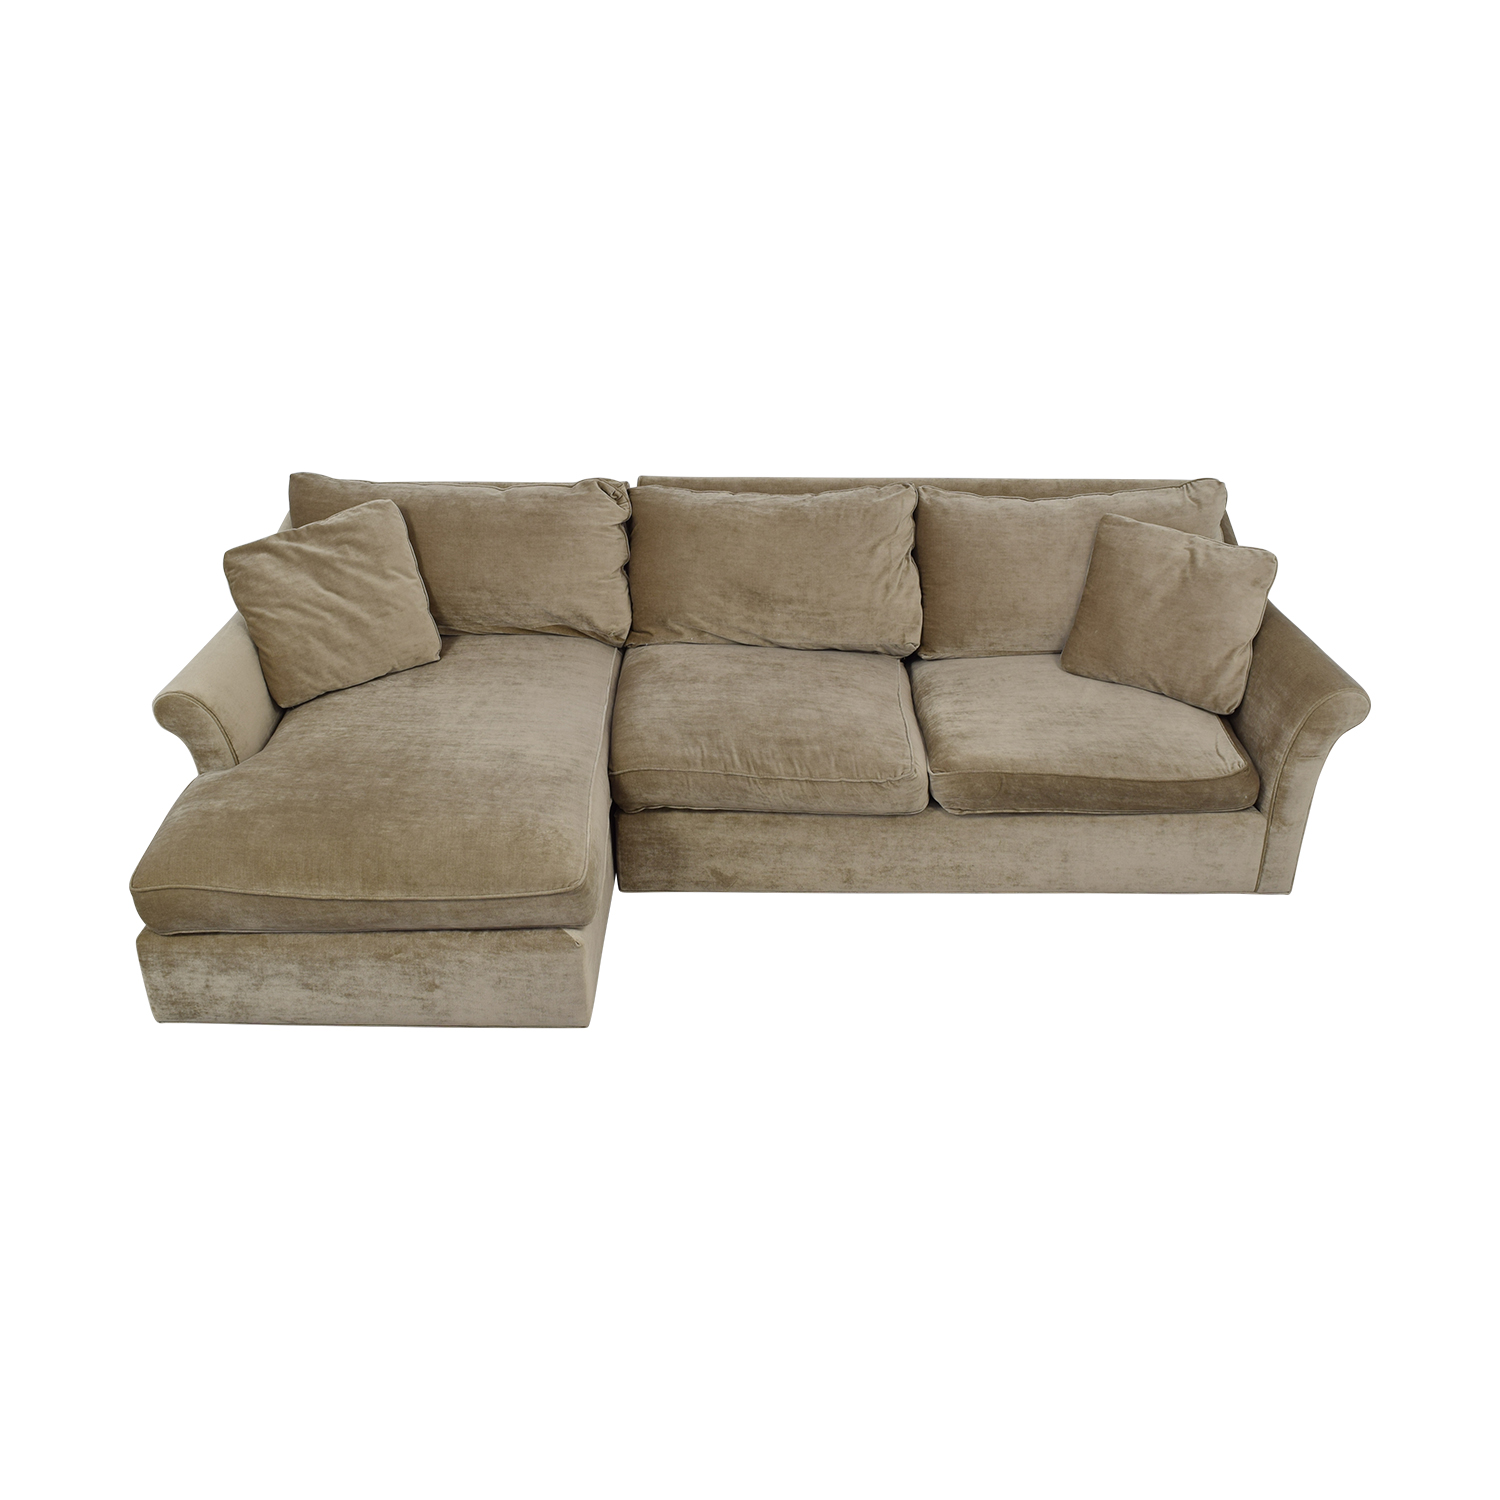 ABC Carpet & Home ABC Carpet & Home Winged Arm Sectional Sofa coupon